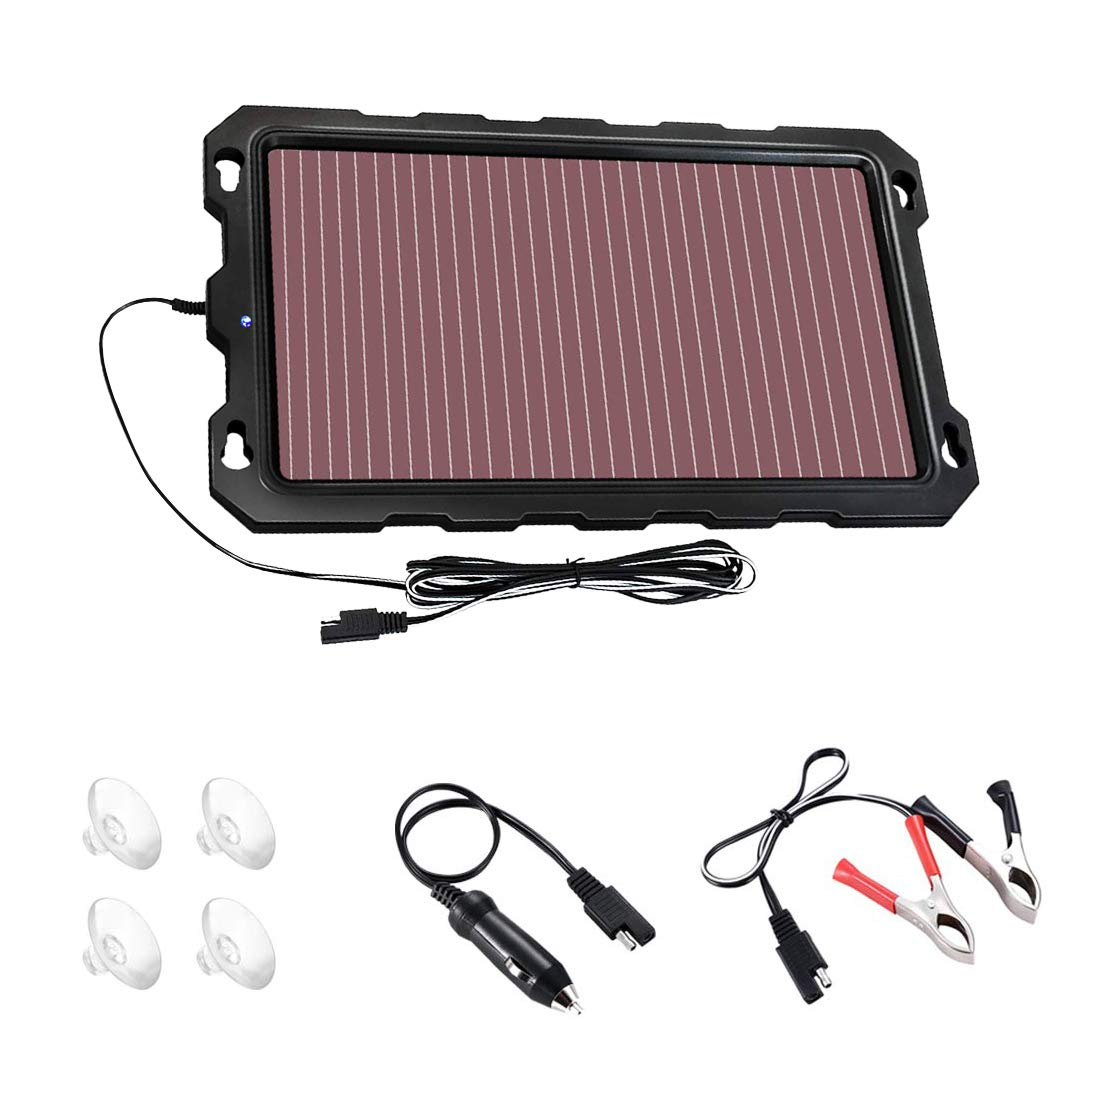 ZEAL LIFE Solar Battery Charger by ZEAL LIFE